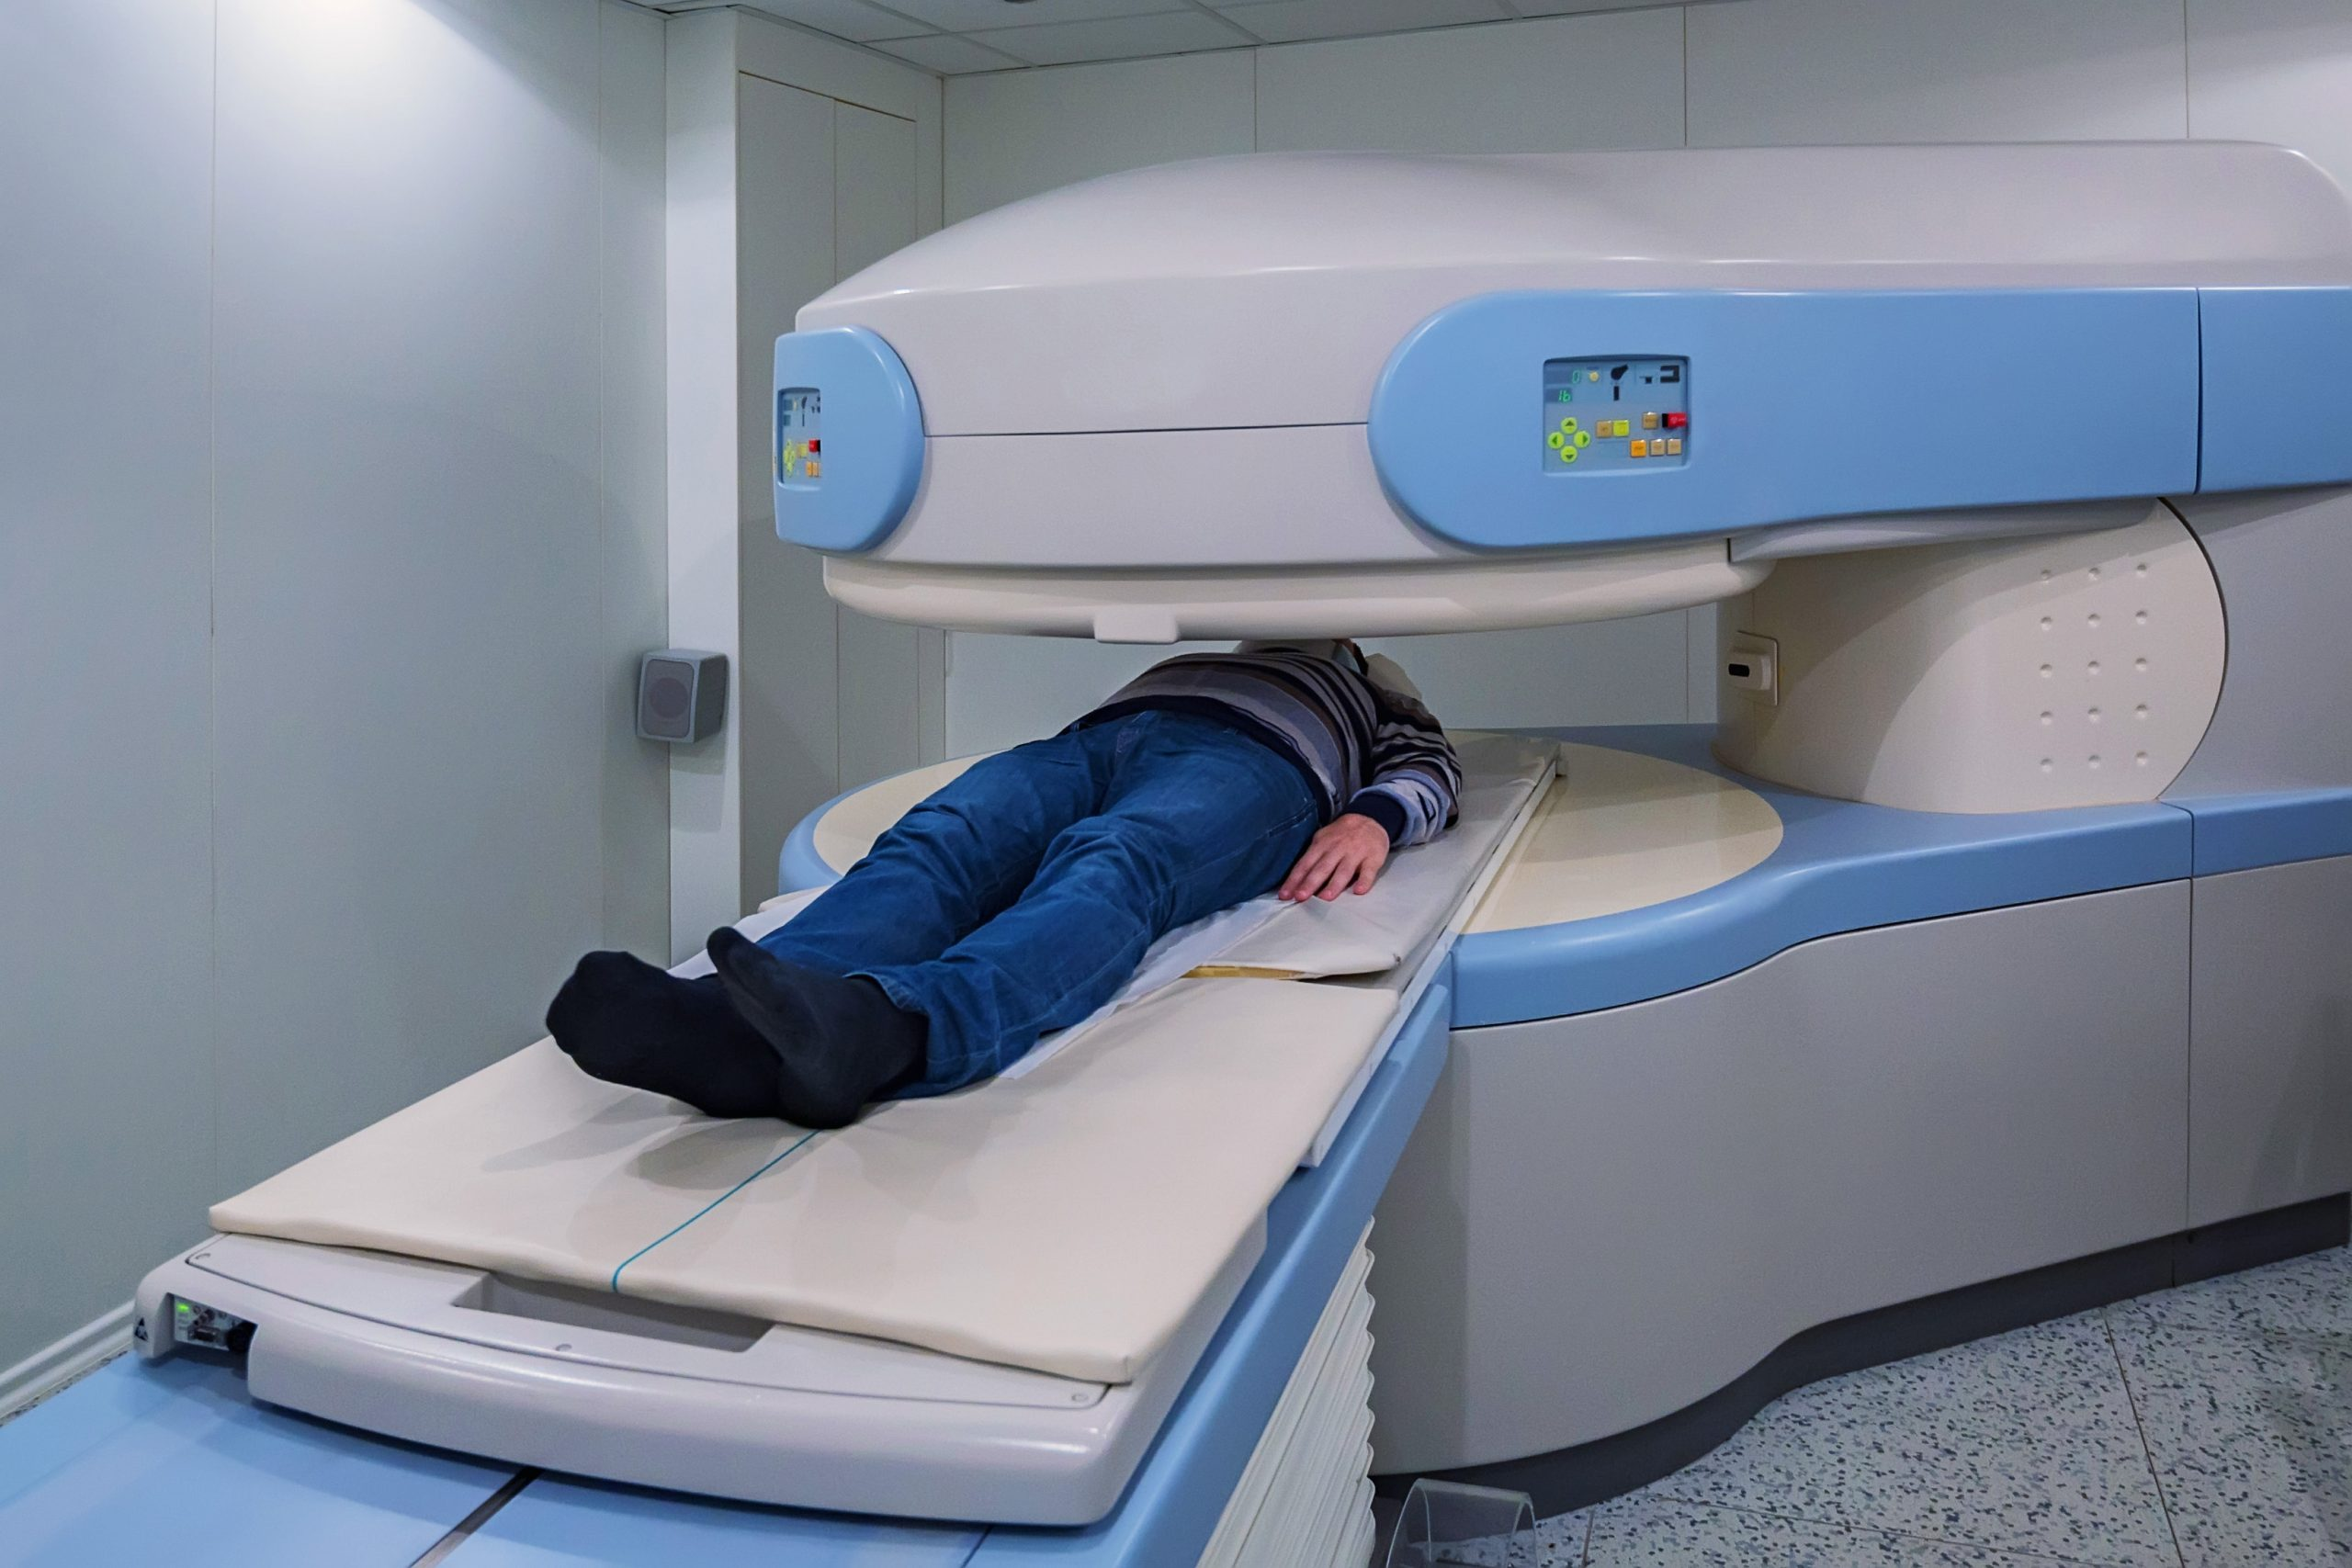 open mri scan on patient in hospital